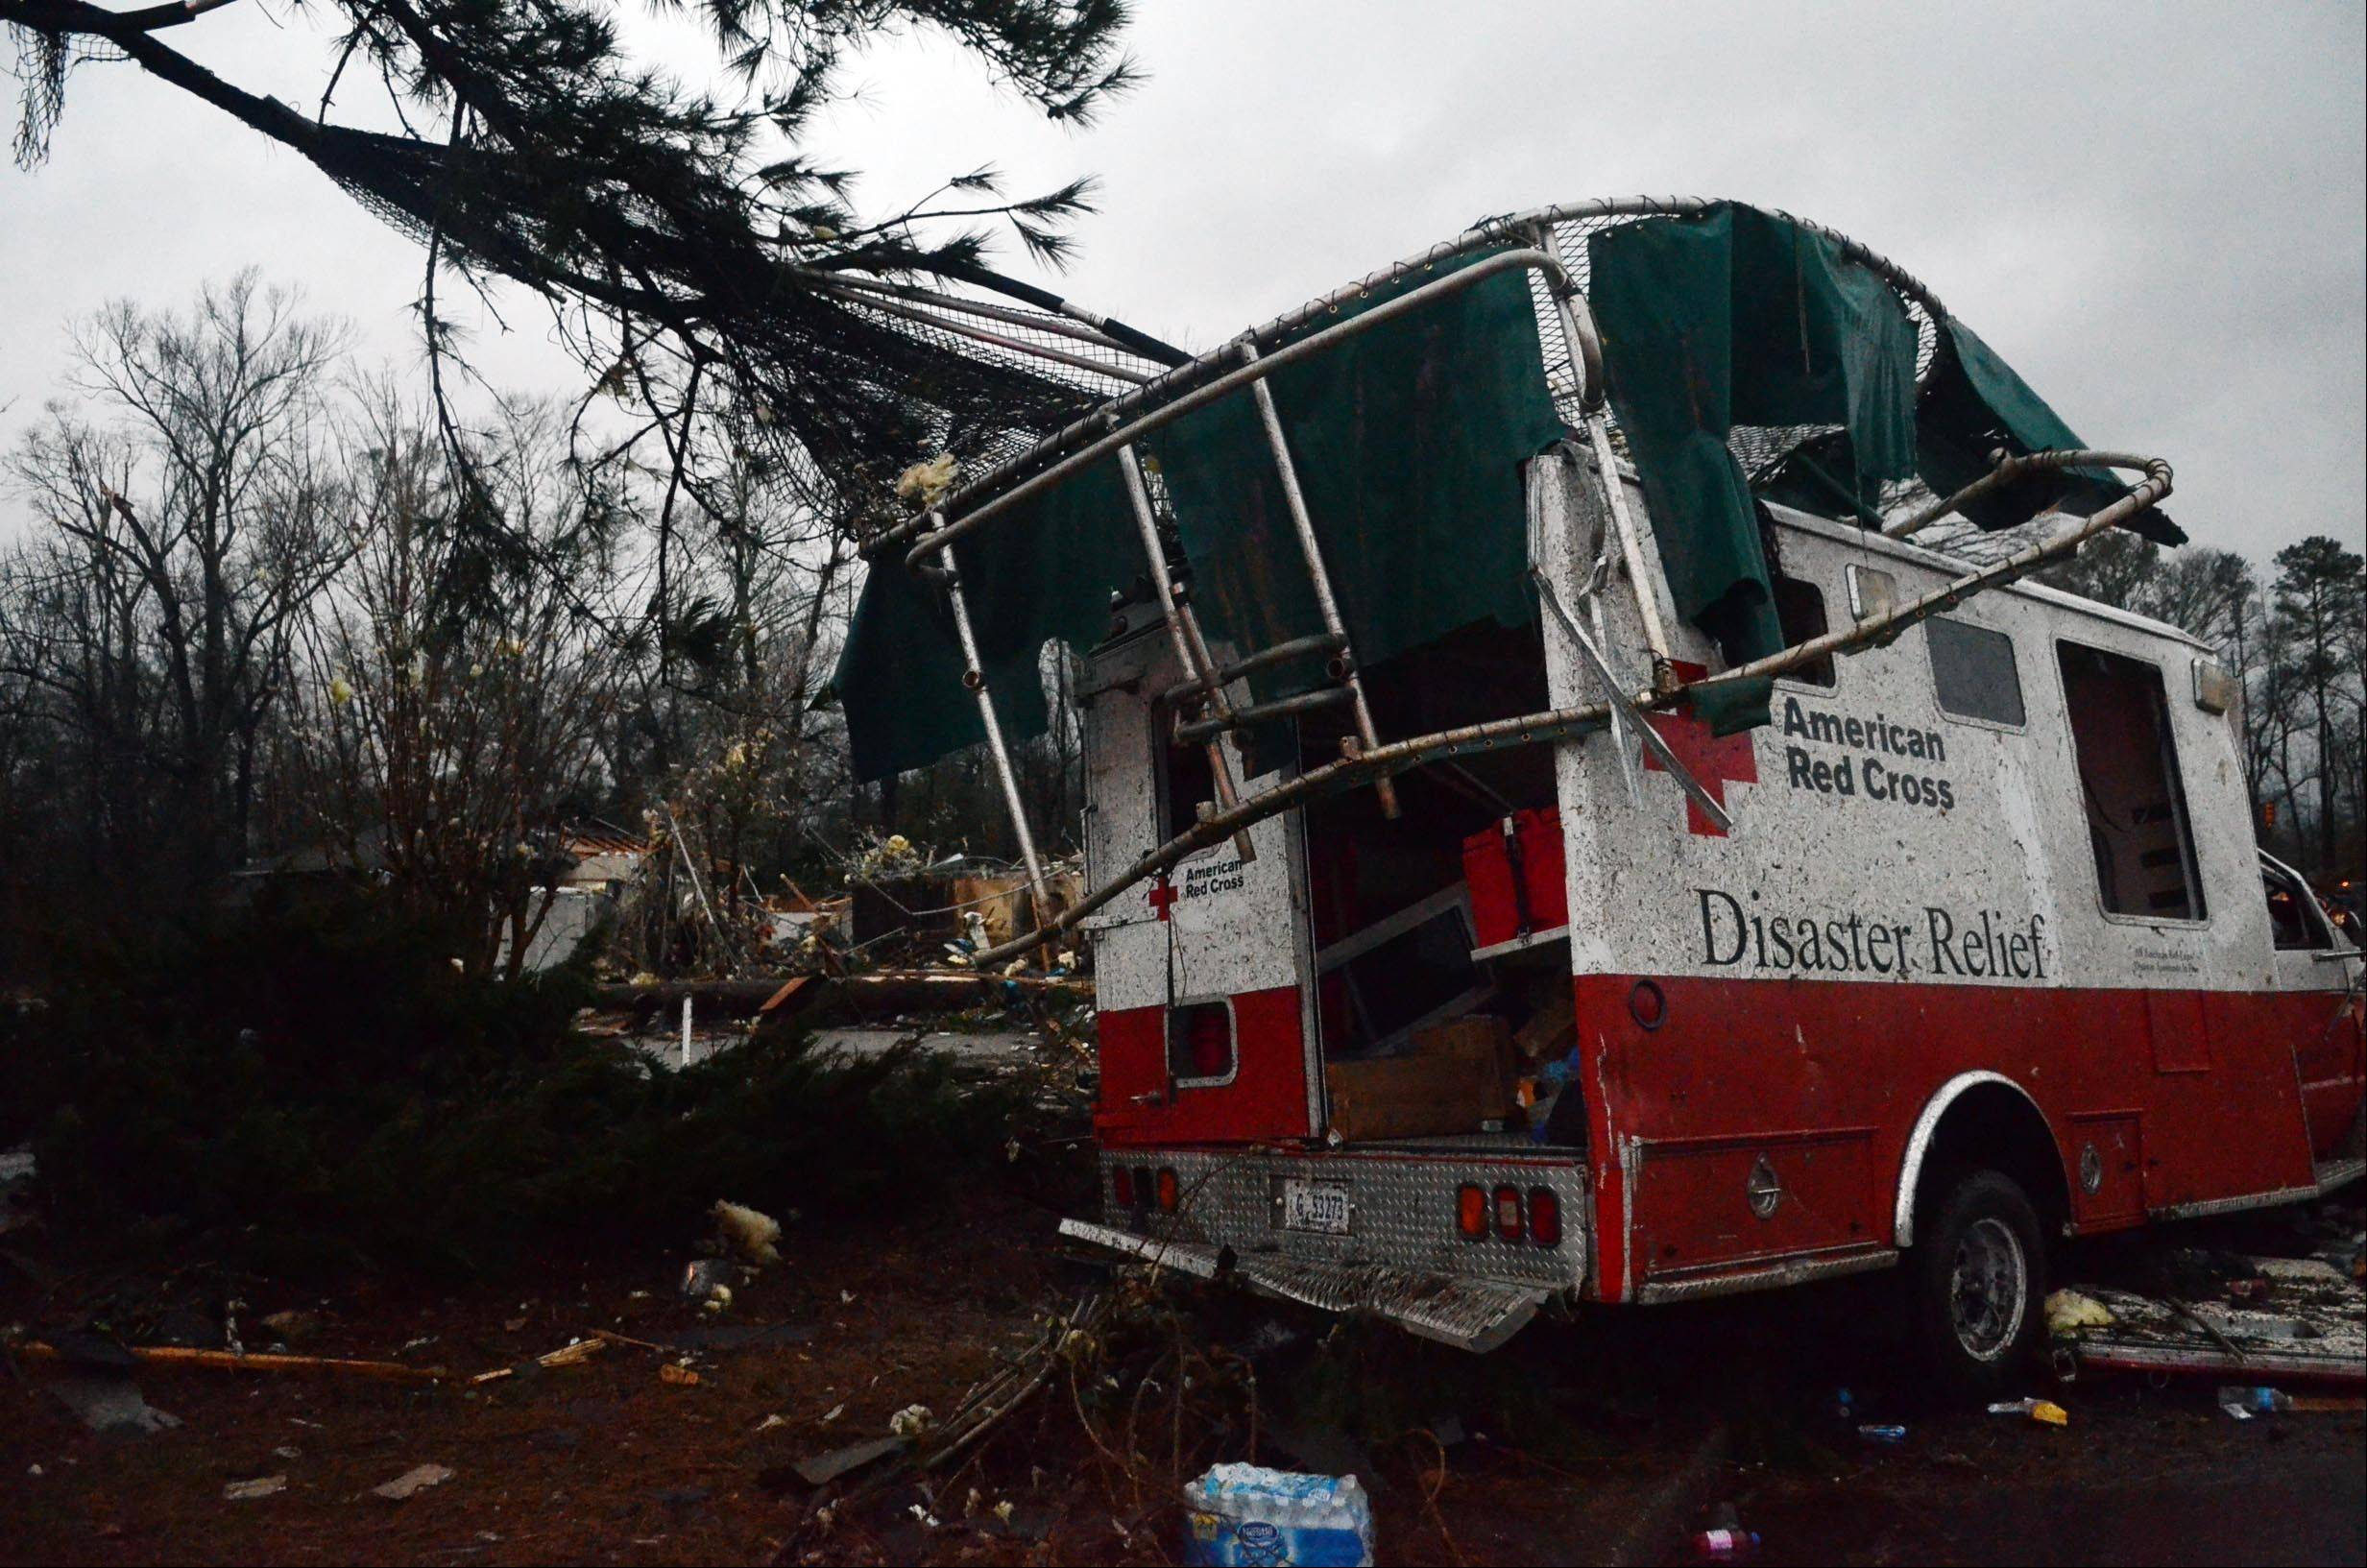 A trampoline rests on top of a damaged American Red Cross disaster relief truck outside of the Hattiesburg American Red Cross center, which was destroyed by an apparent tornado that moved through Hattiesburg, Miss., Sunday.